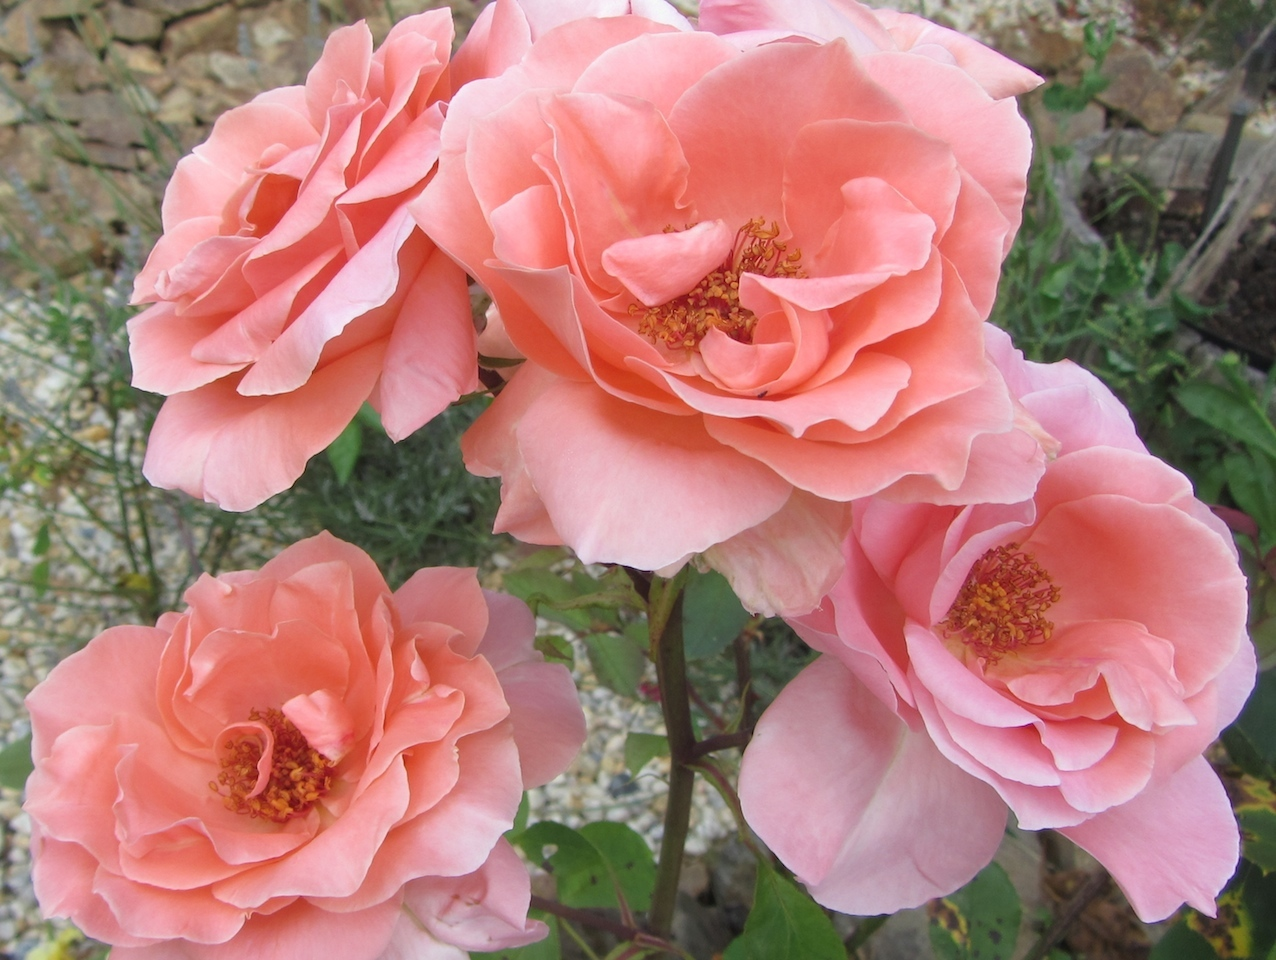 pink roses at Le Choisel, Normandy, France